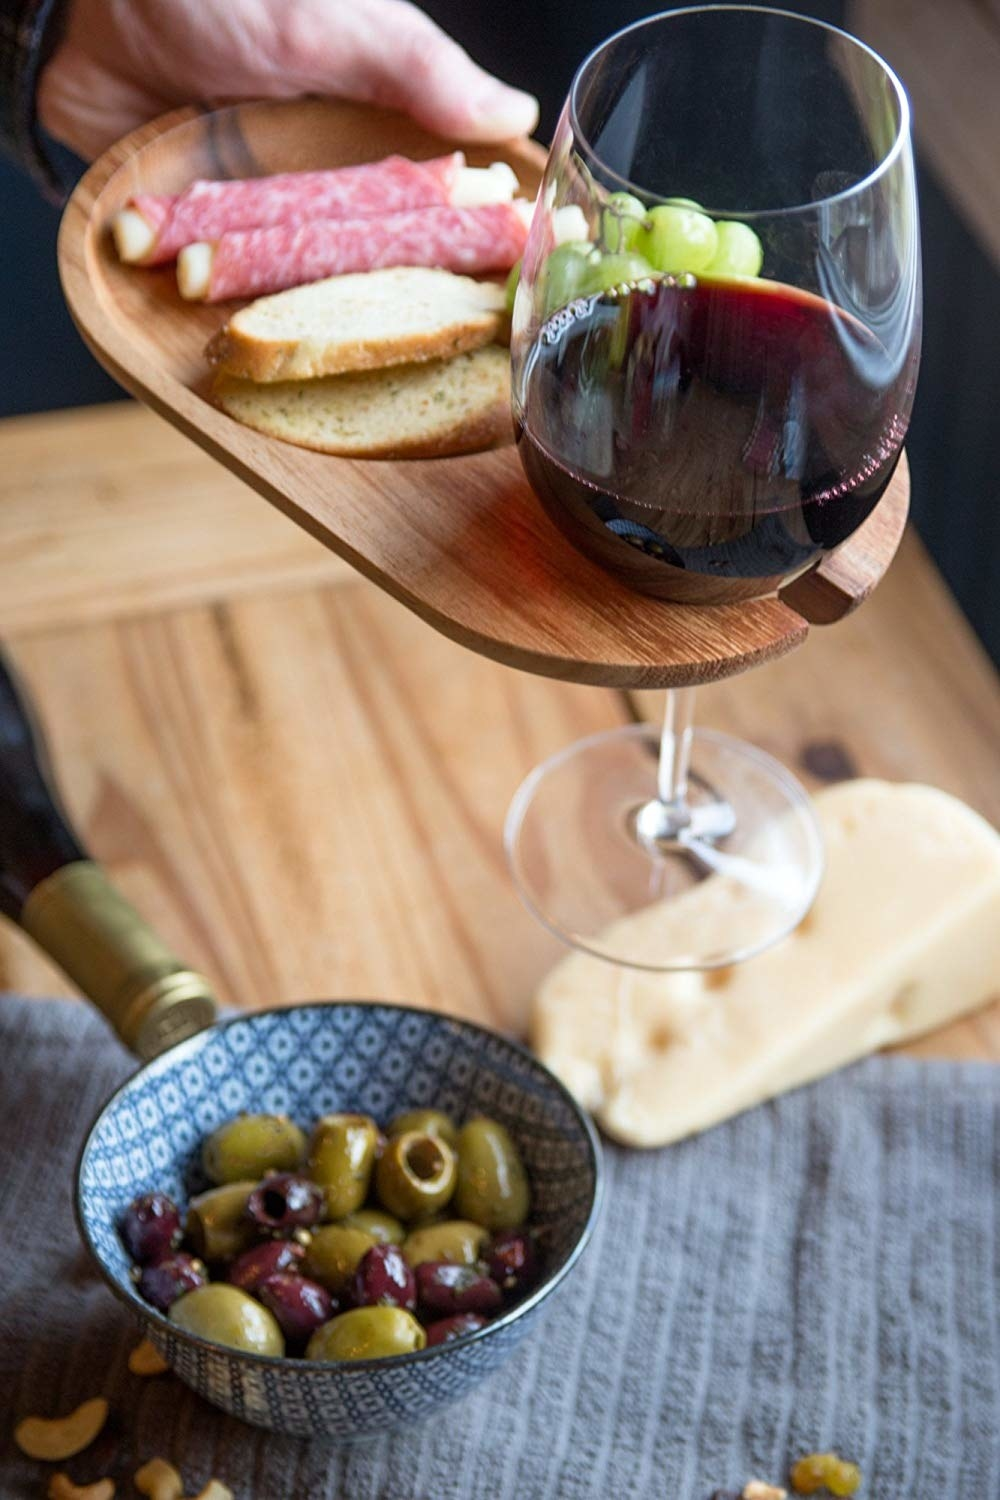 Wooden plate with built-in slot with wine glass hanging from it